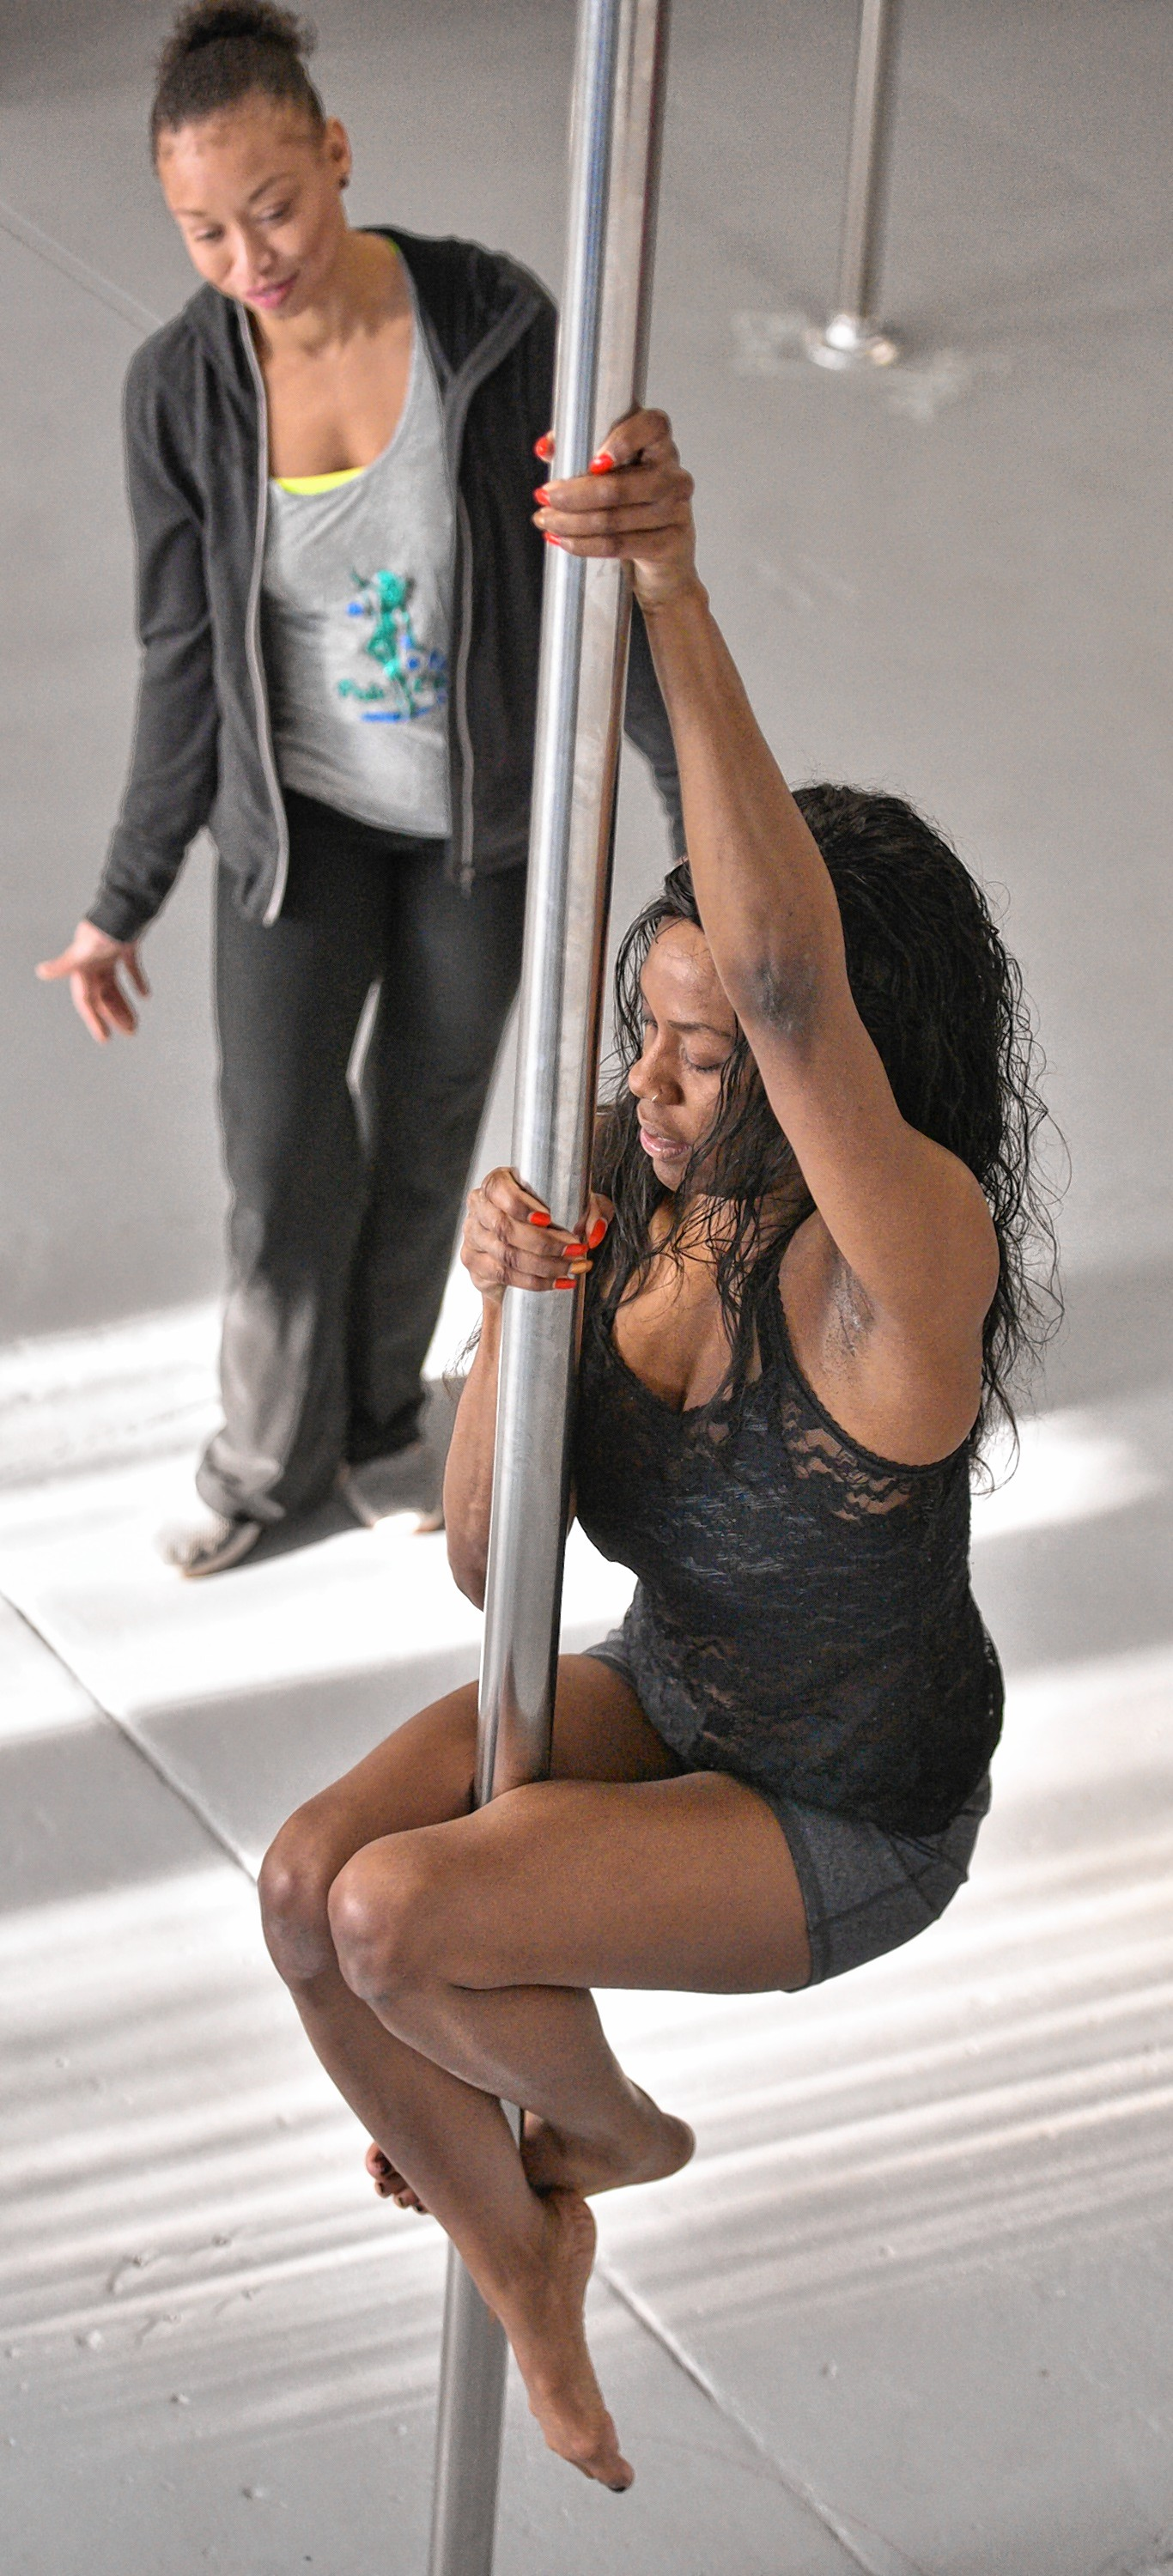 Pole Fitness: From adult entertainment to an Olympic sport